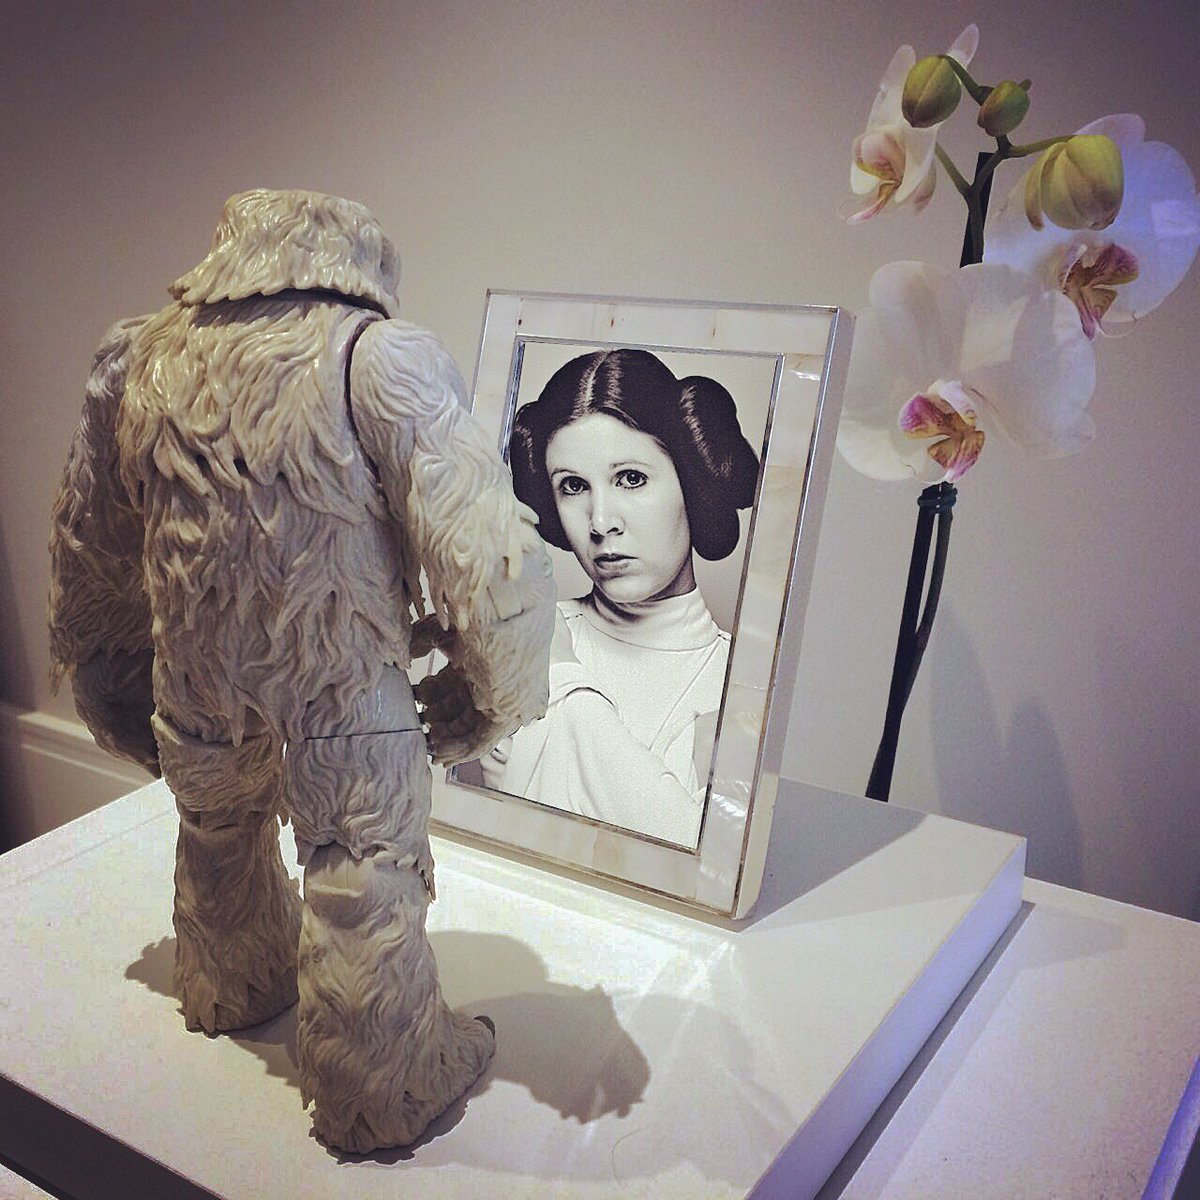 – I miss you... so much. #CarrieFisher #happybirthday #AlwaysWithUs #PrincessLeia <br>http://pic.twitter.com/JEJ6Jo9Gdm